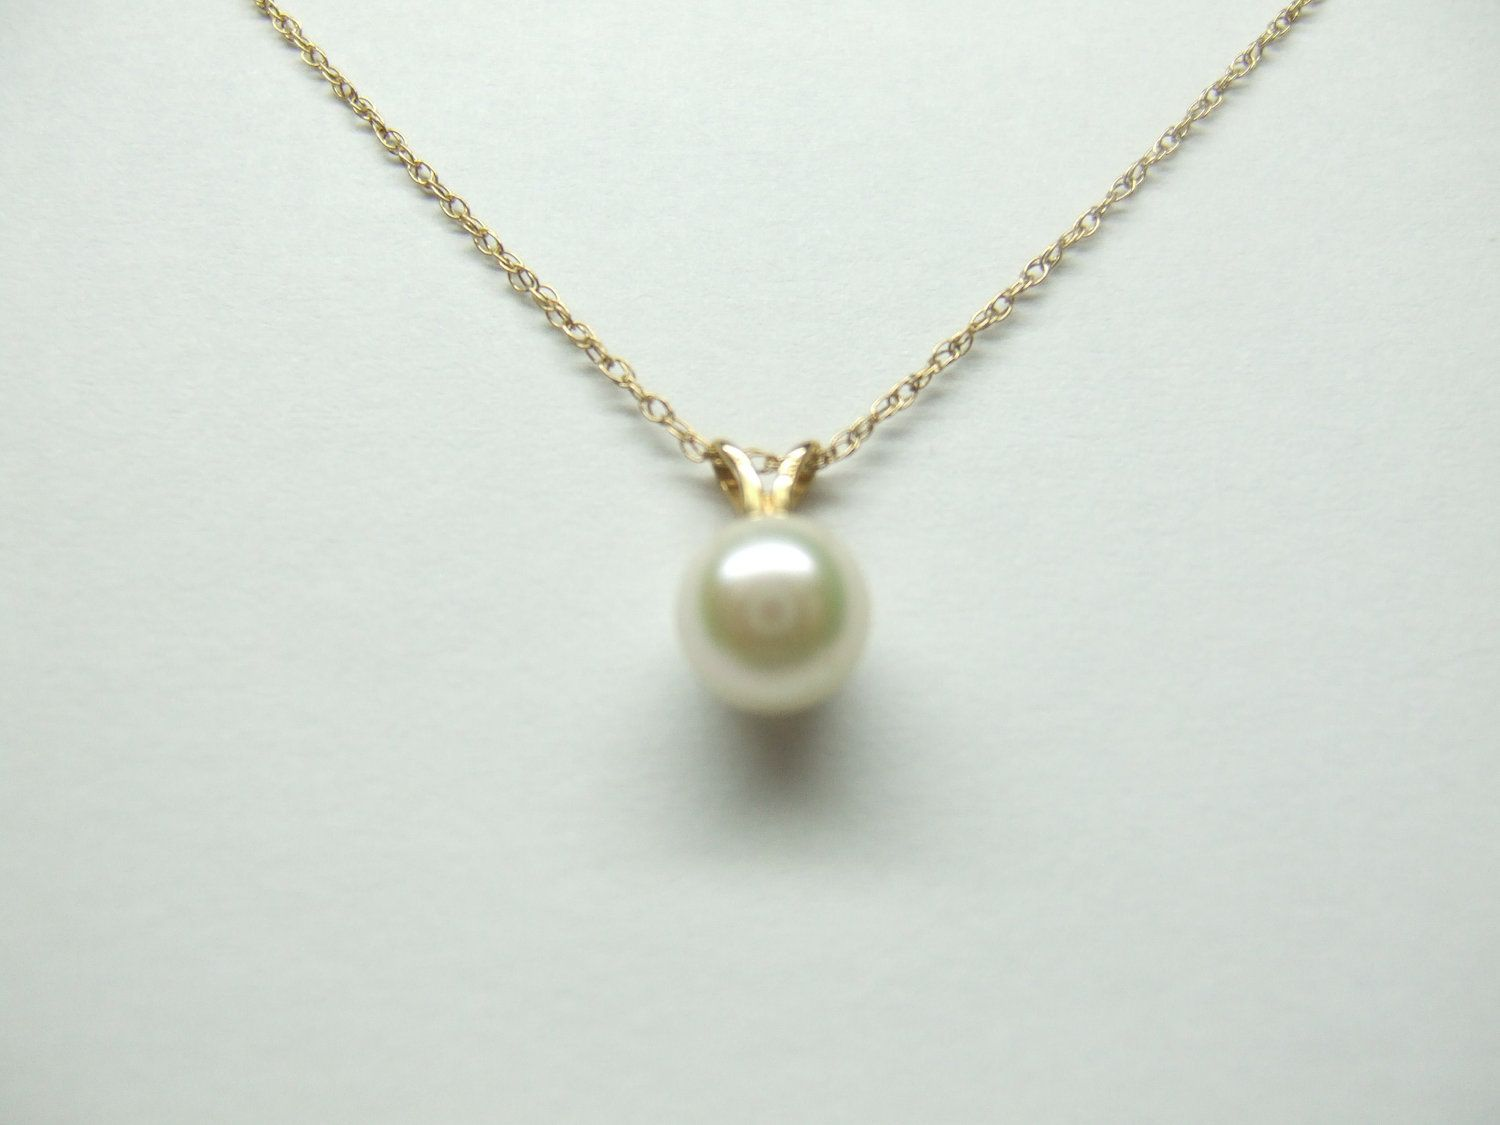 Find This Pin And More On Jewelry Vintage Pearl Pendant With Thin Gold  Chain